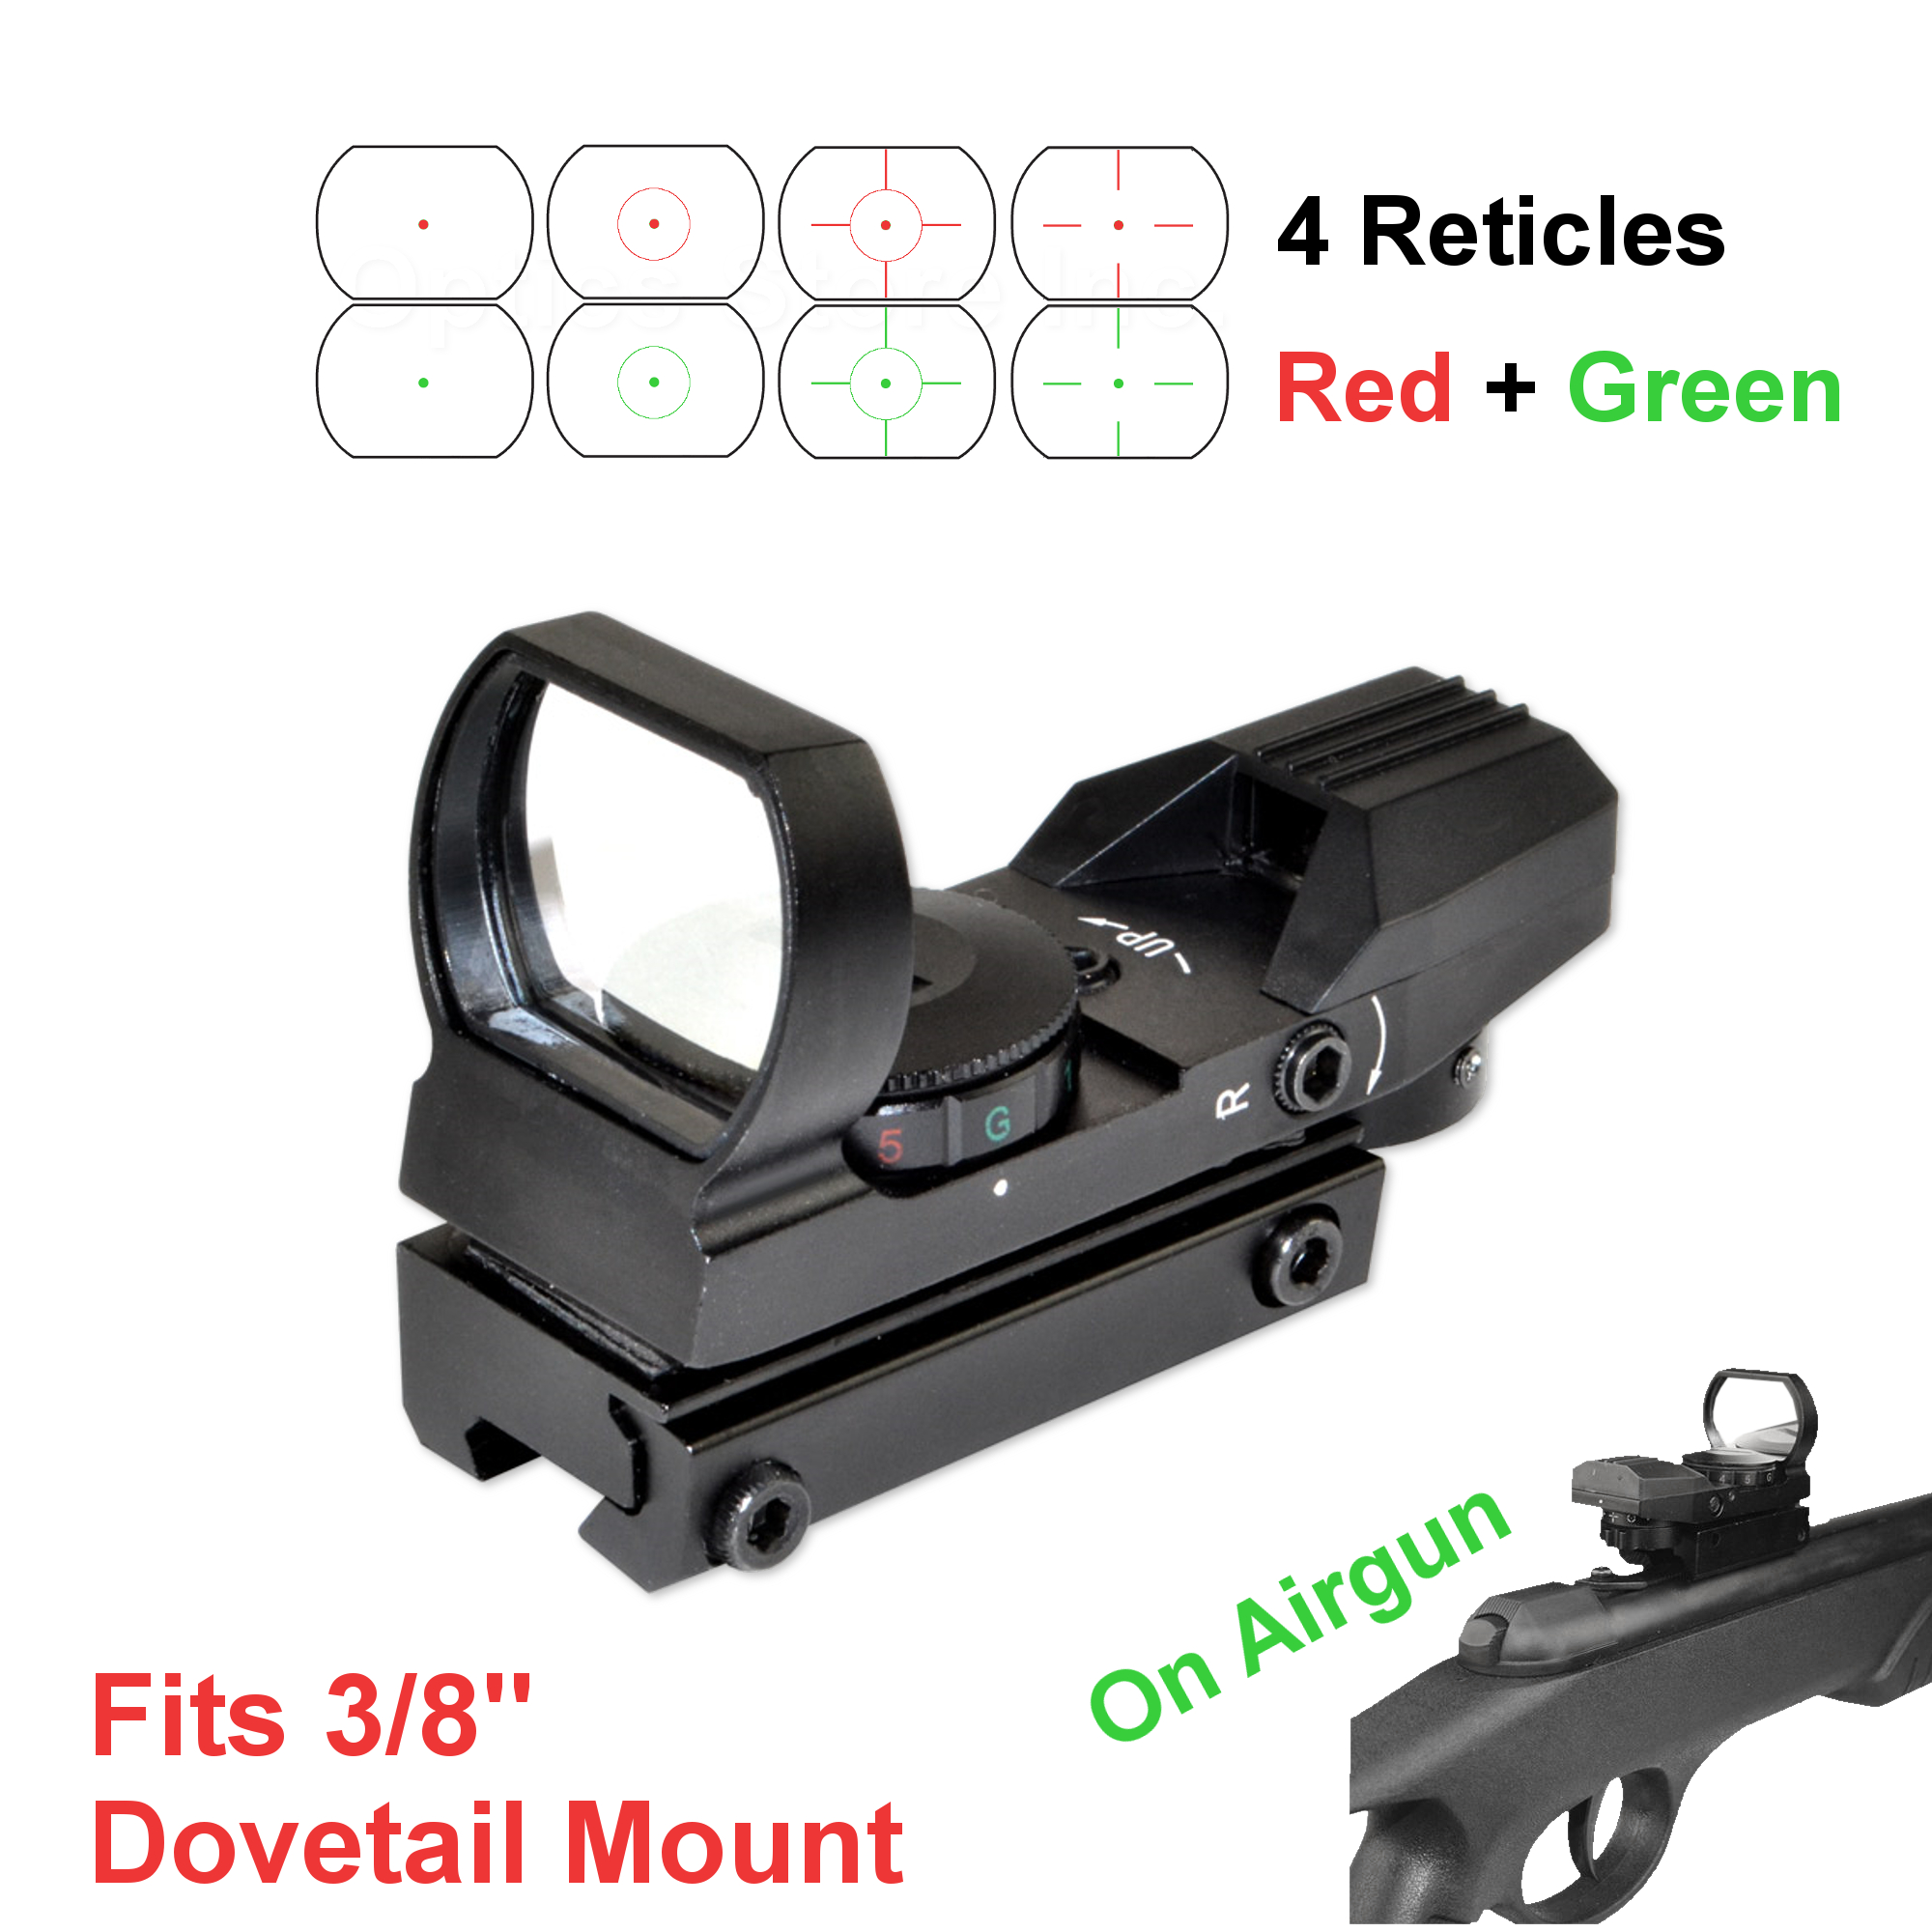 "Field Sport Red and Green Reflex Sight with 4 Reticles, For 3/8"" Dovetail Mount - Airgun .22"